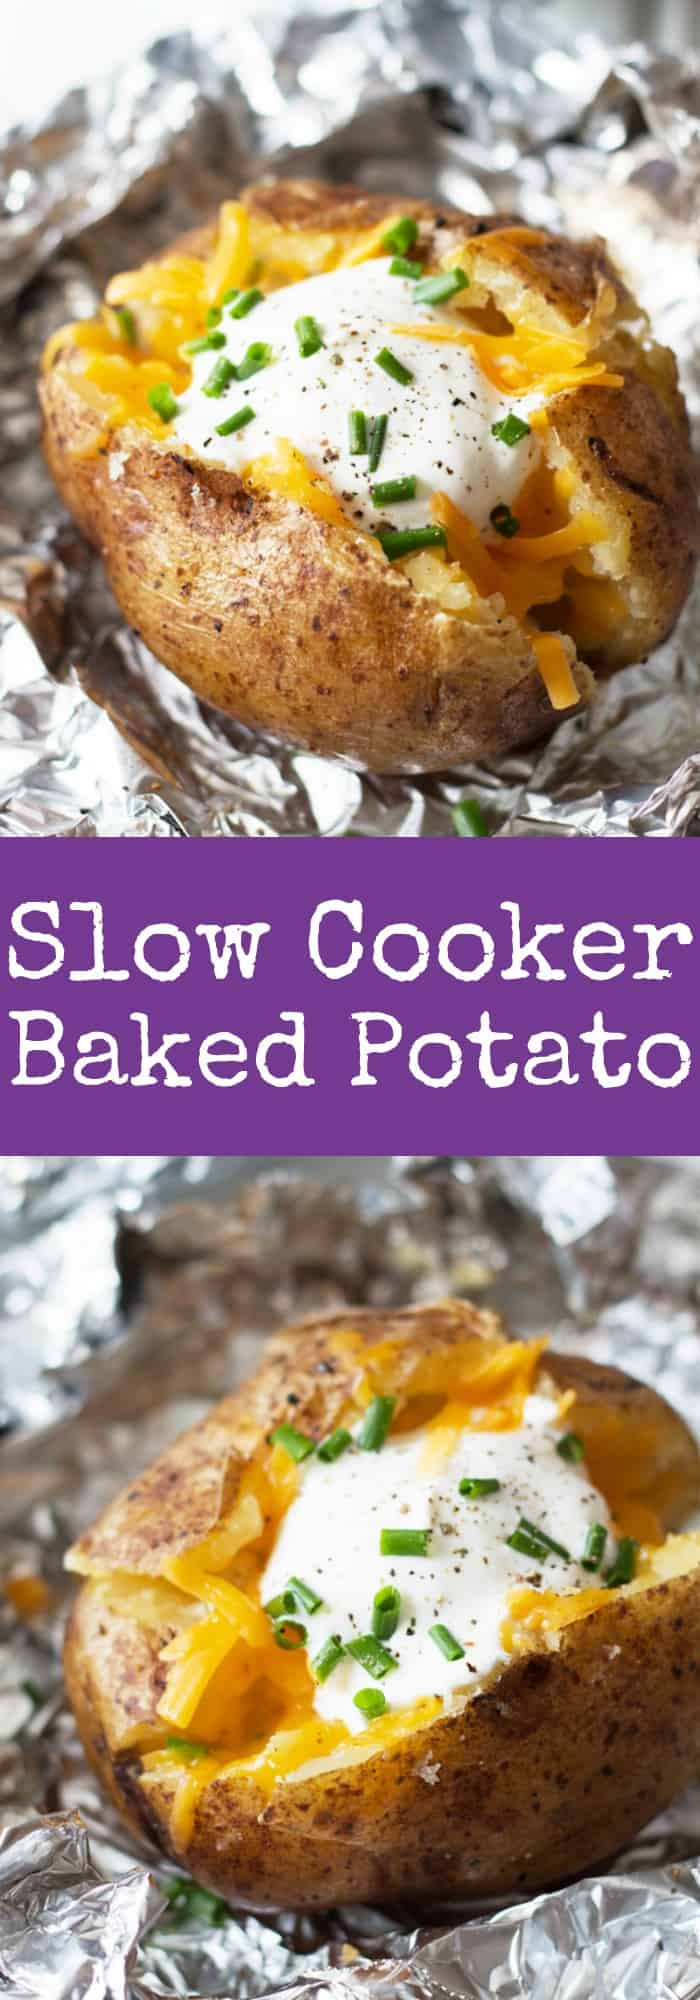 Slow Cooker Baked Potatoes - an easy way to come home to baked potatoes! | www.countrysidecravings.com